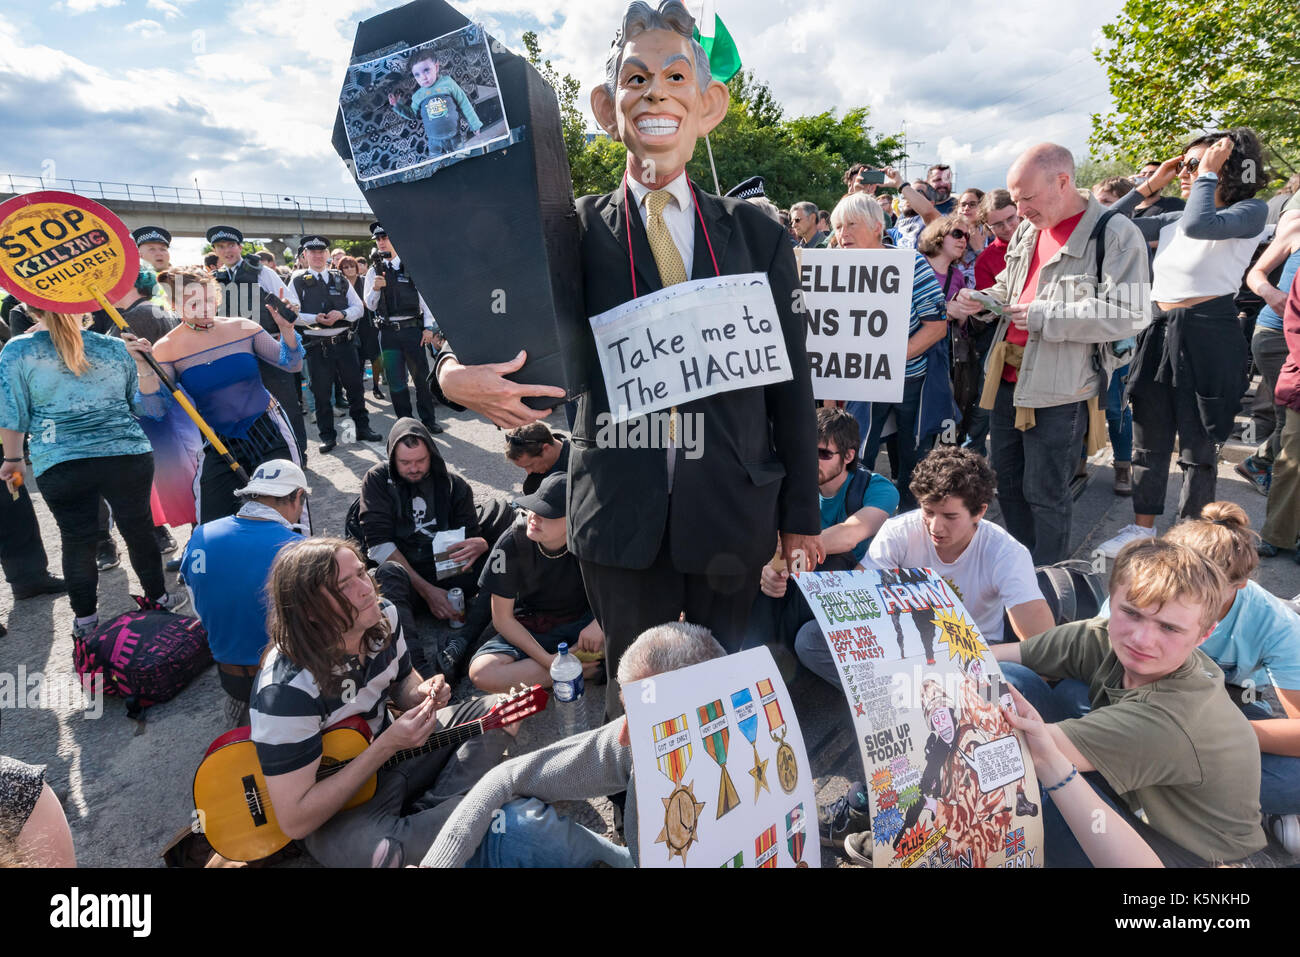 London, UK. 9th Sep, 2017. London, UK. 9th September 2017. Protesters, including a man in a TOny Blair mas with a placard 'Take me to the HAGUE' and a small coffin block the road at the Festival of Resistance at the East gate of the worlds's largest arms fair, DSEI, the Defence & Security Equipment International. The arms fair is backed by the UK government and is where arms companies and arms dealers sell weapons to countries around the world including many repressive regimes. Police tried to clear the road and made several arrests. Peter Marshall Images Live (Credit Image: © Peter Mar Stock Photo